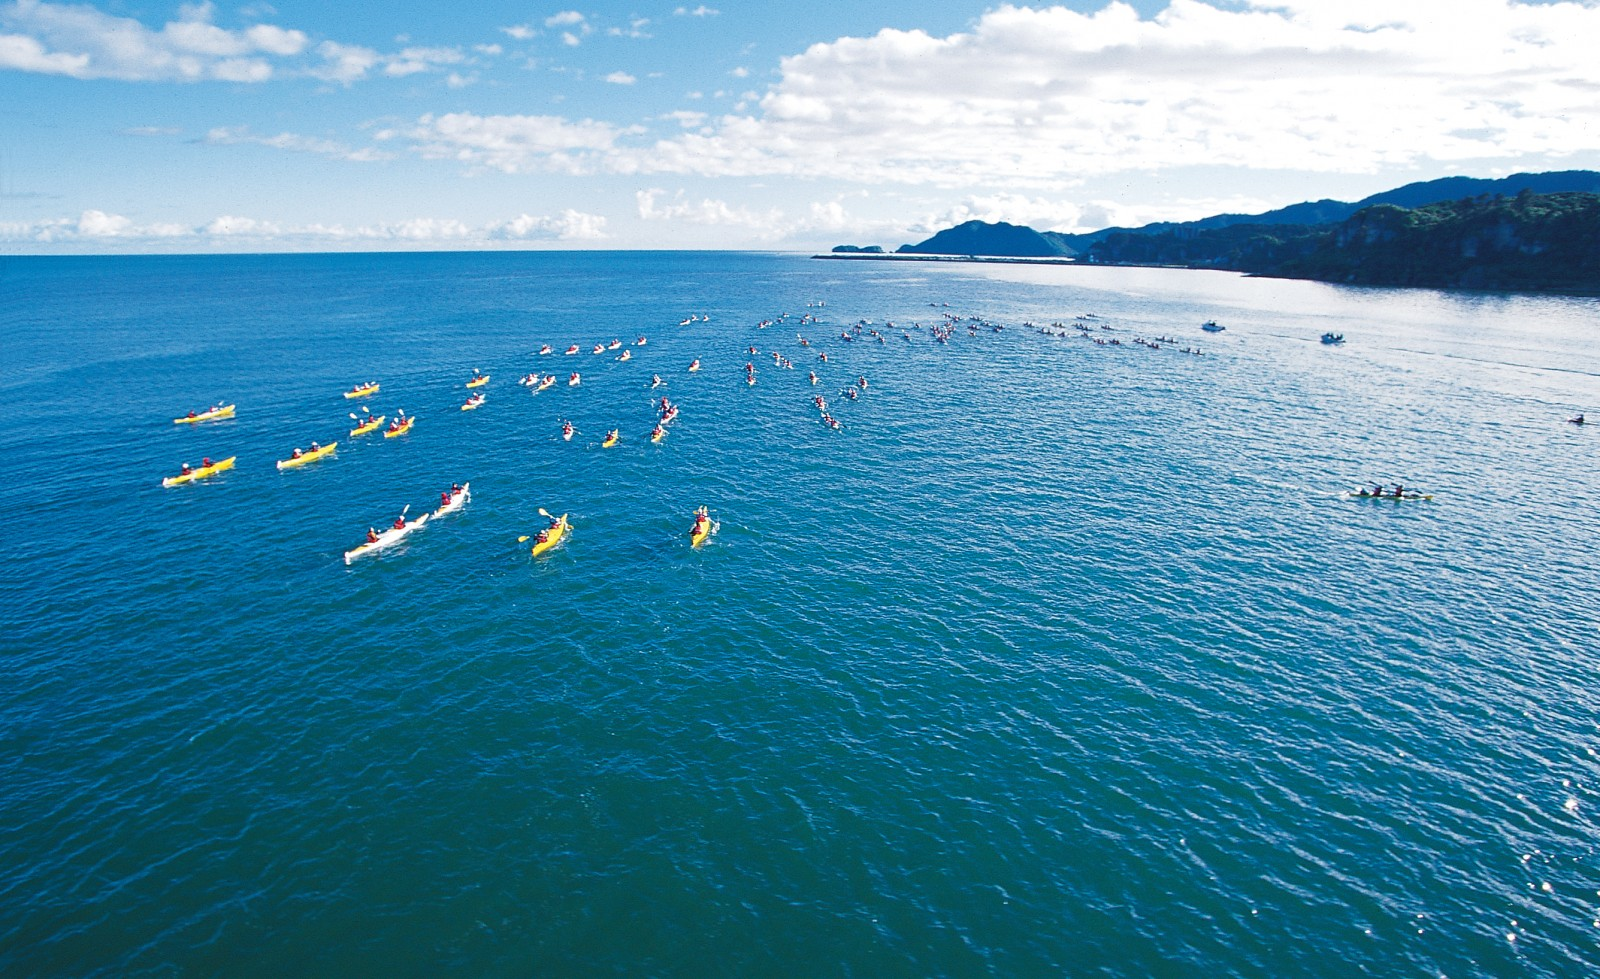 Paddles flailing, competitors speed towards Abel Tasman National Park during the first leg of the race. For most, this is the last time they will see the frontrunners for the rest of the week. Below: crossing a ford on the Whangapeka River.